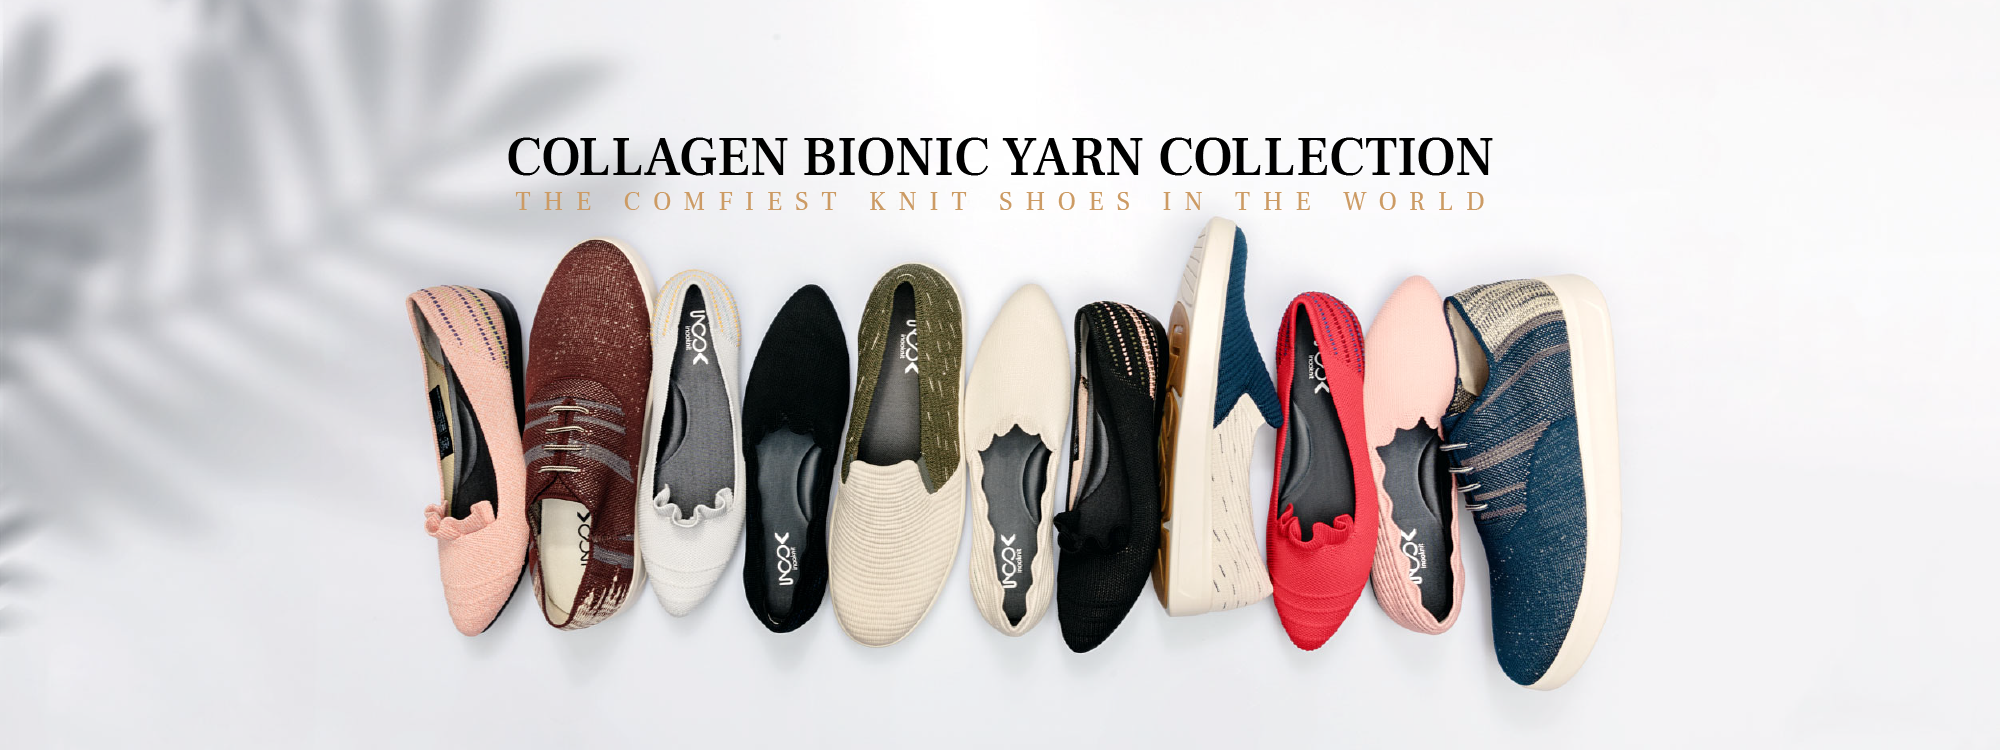 en-Bionic Yarn Collection B